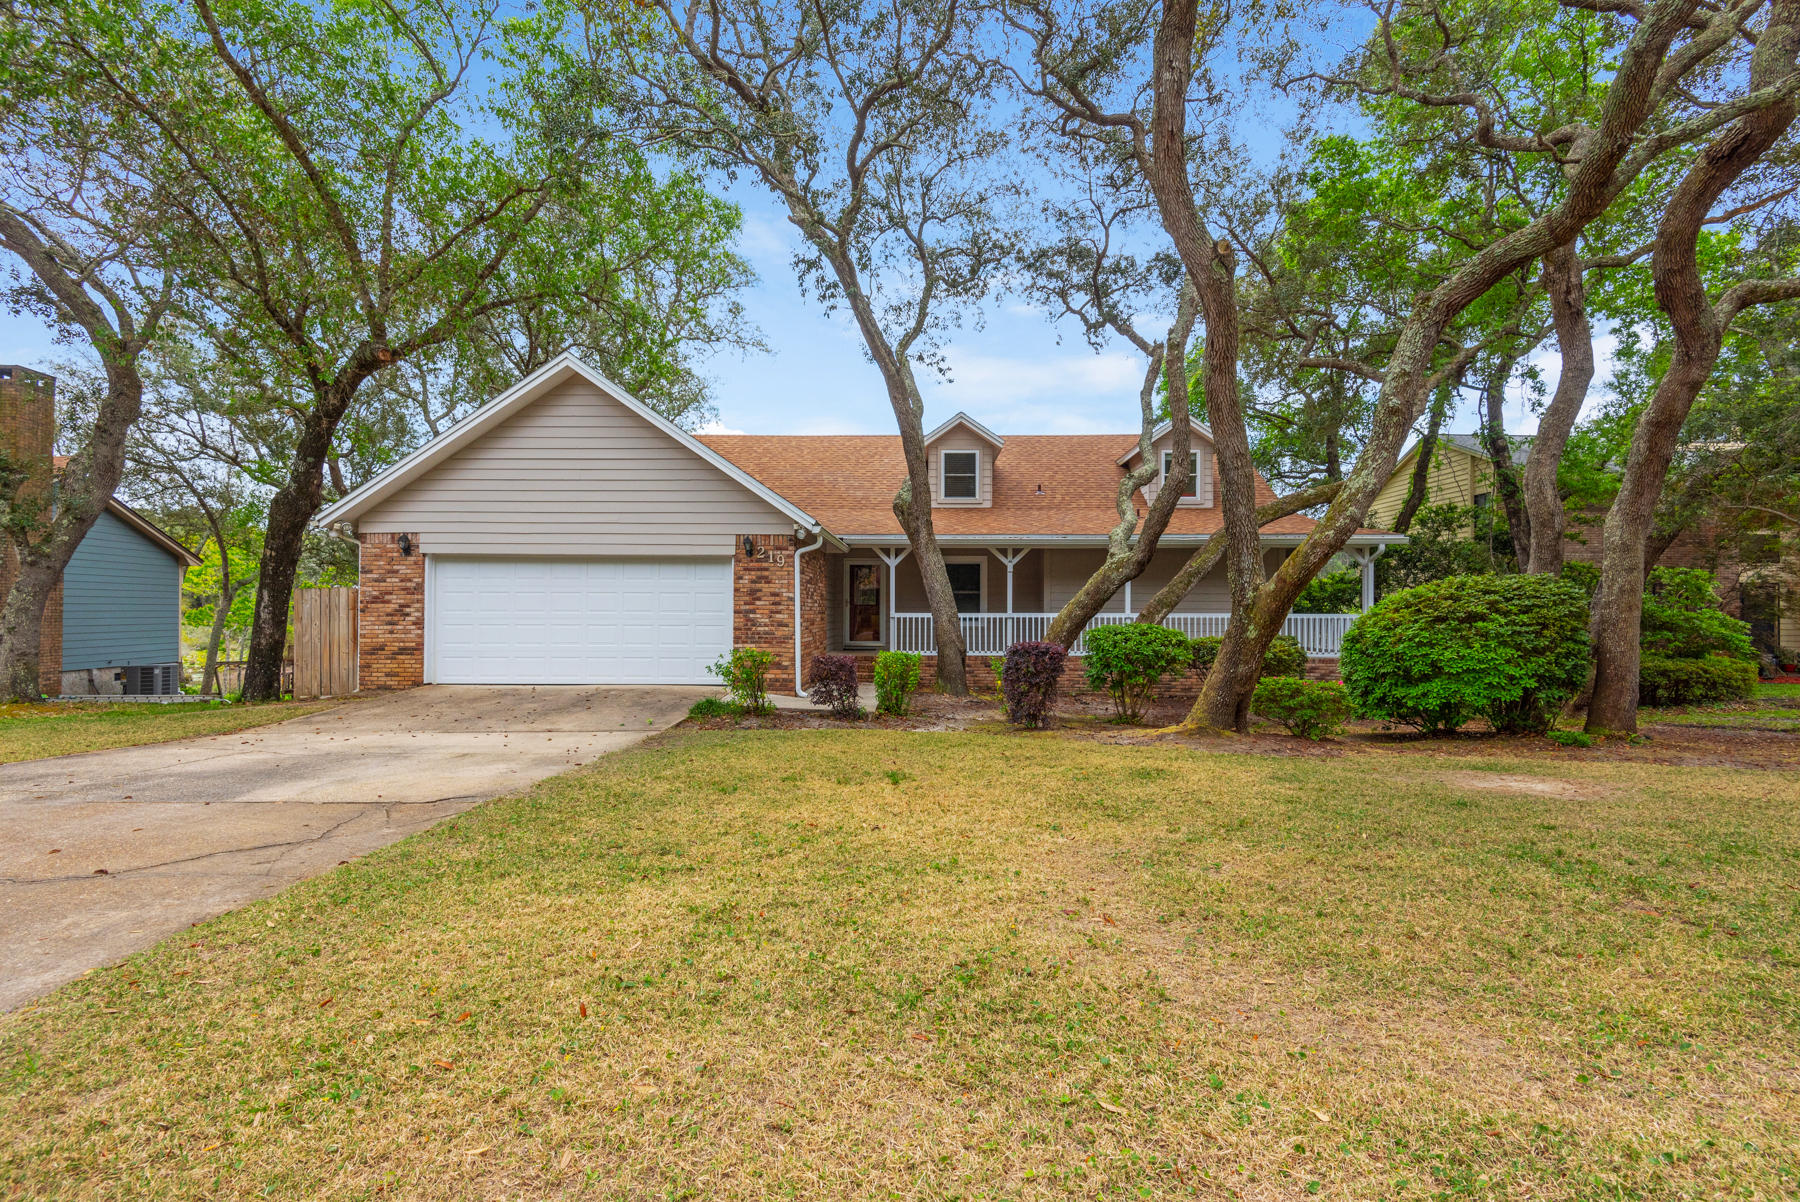 219 E Dominica Circle, Niceville in Okaloosa County, FL 32578 Home for Sale